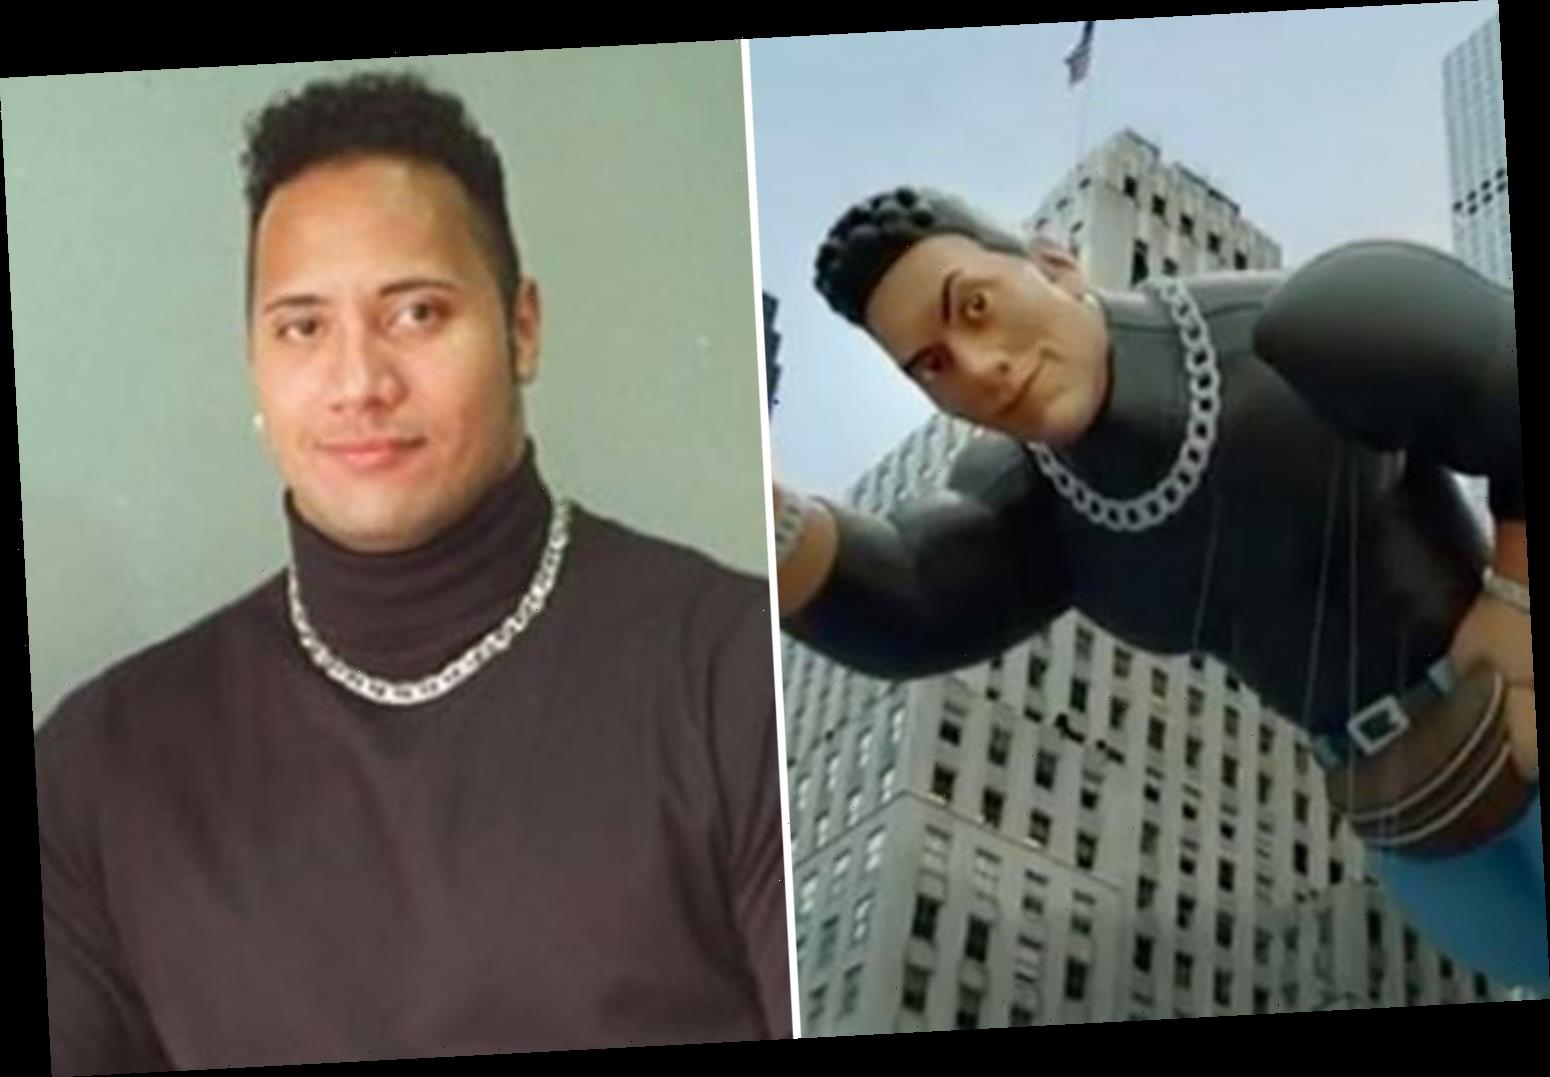 WWE legend The Rock gets incredible Macy's Thanksgiving Day parade float based on iconic turtle-neck photo from 90s